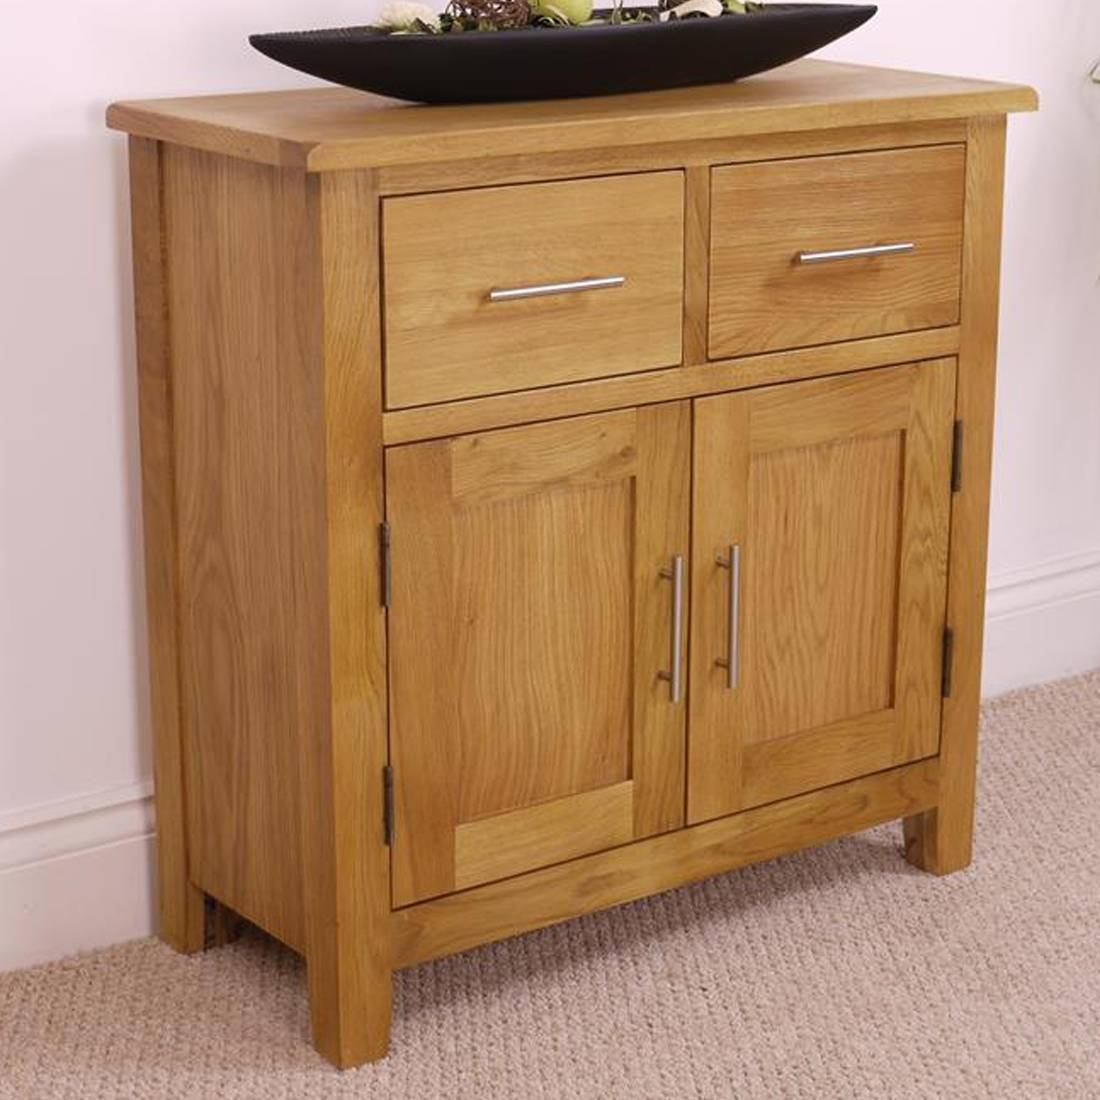 Nebraska Oak Sideboard / Solid Wood Small 2 Door 2 Drawer Storage regarding Solid Wood Sideboards (Image 12 of 15)